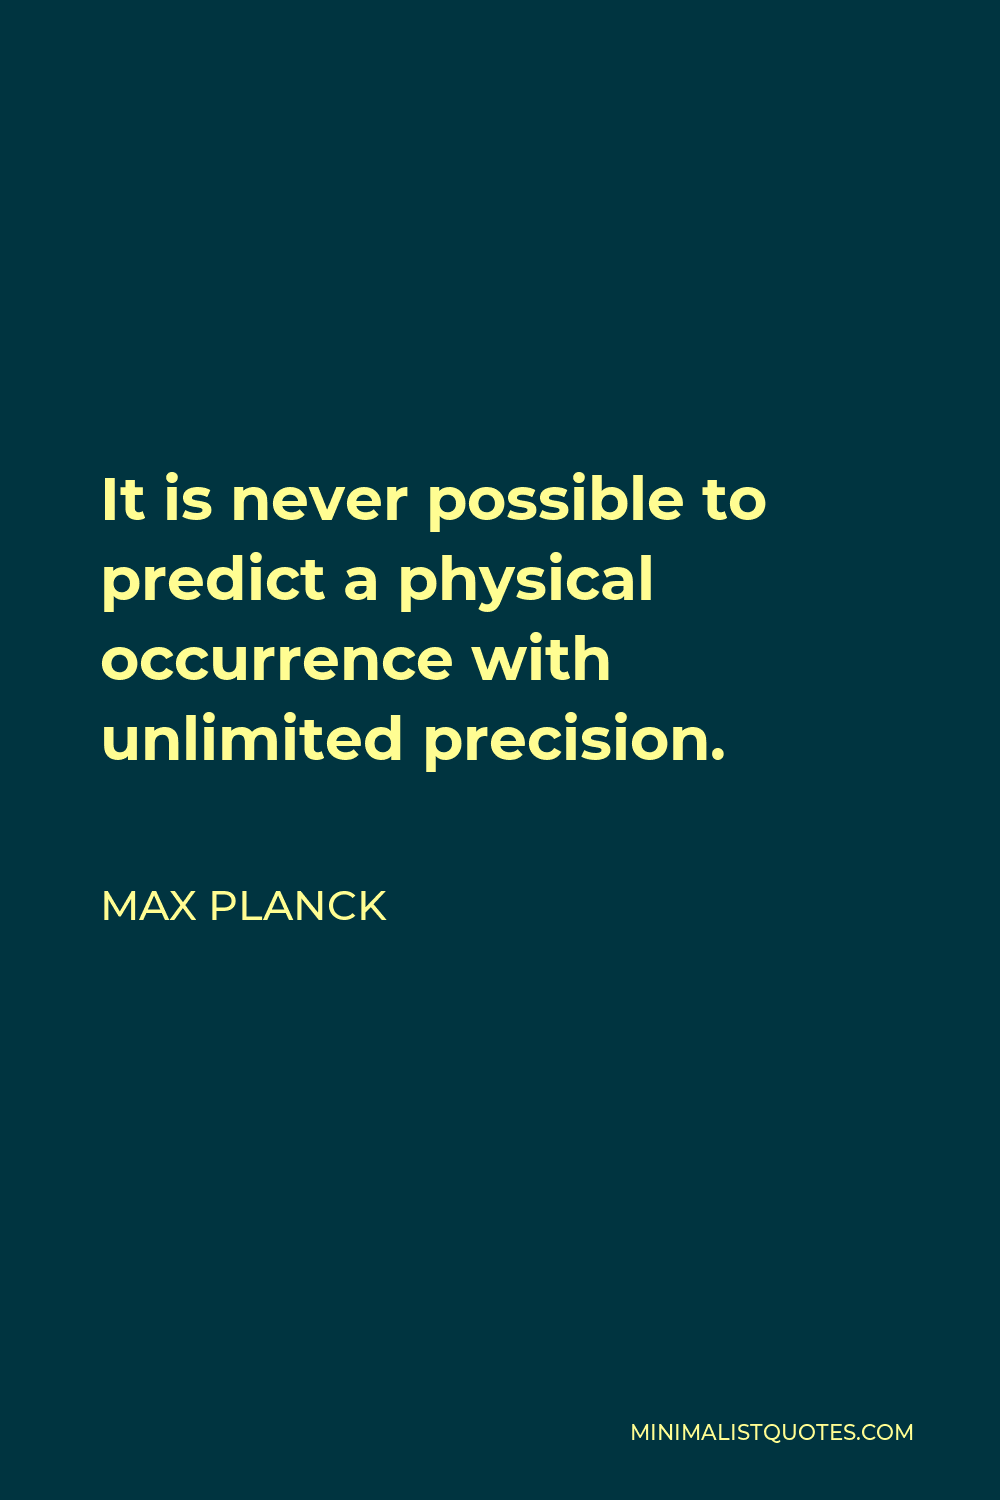 Max Planck Quote - It is never possible to predict a physical occurrence with unlimited precision.